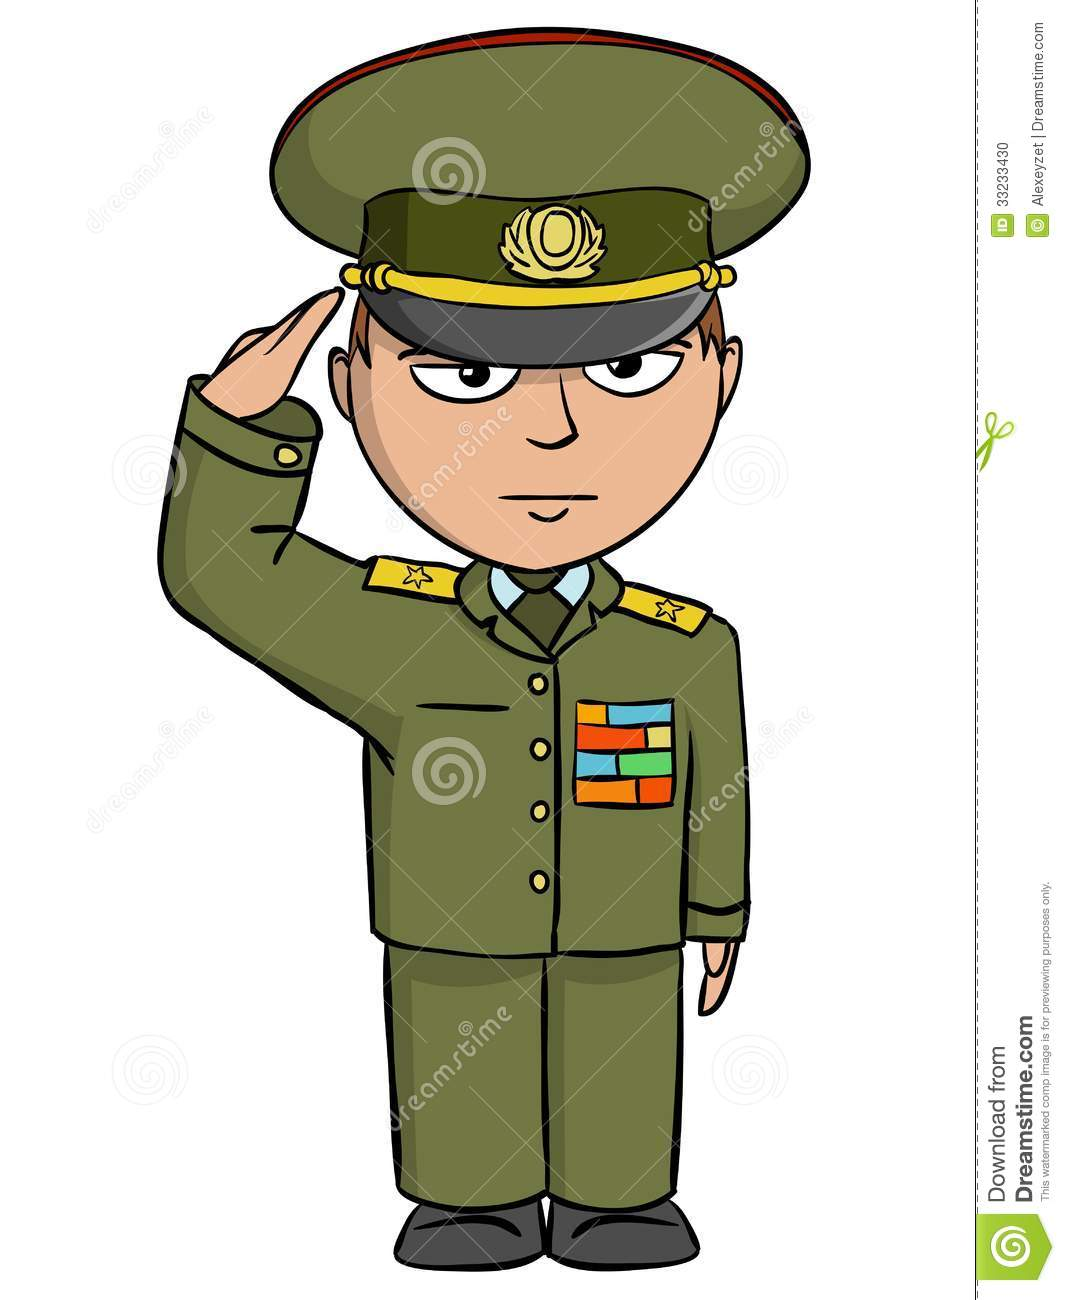 http://thumbs.dreamstime.com/z/military-cartoon-man-salutes-outfit-vector-illustration-33233430.jpg